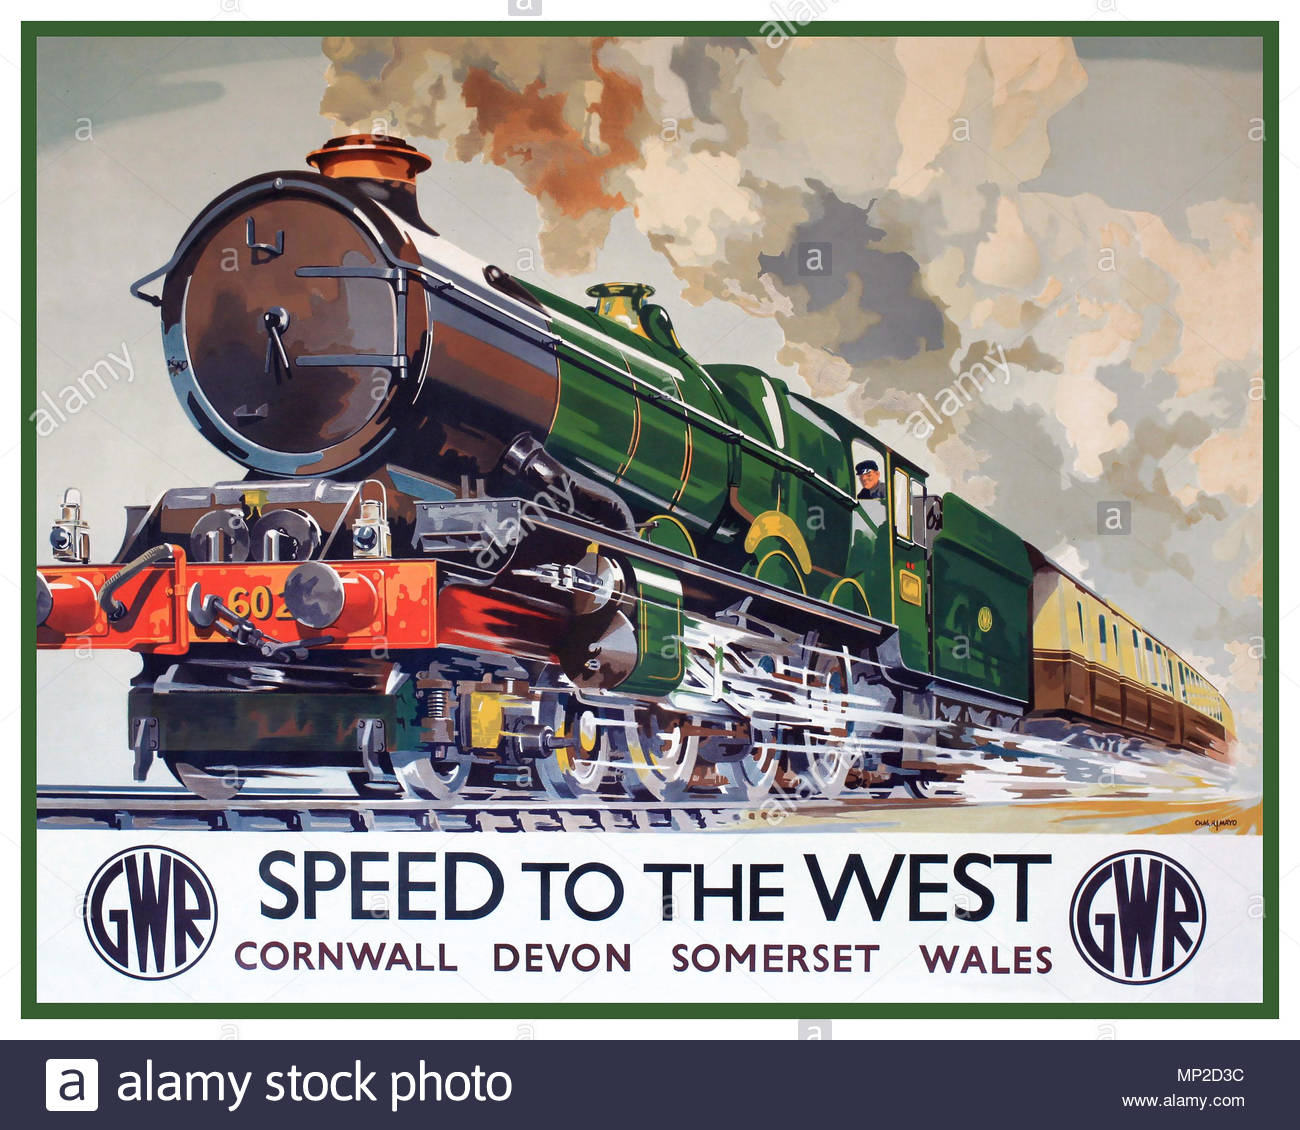 Newquay British Railway Old Vintage Retro Travel Advert Picture Poster